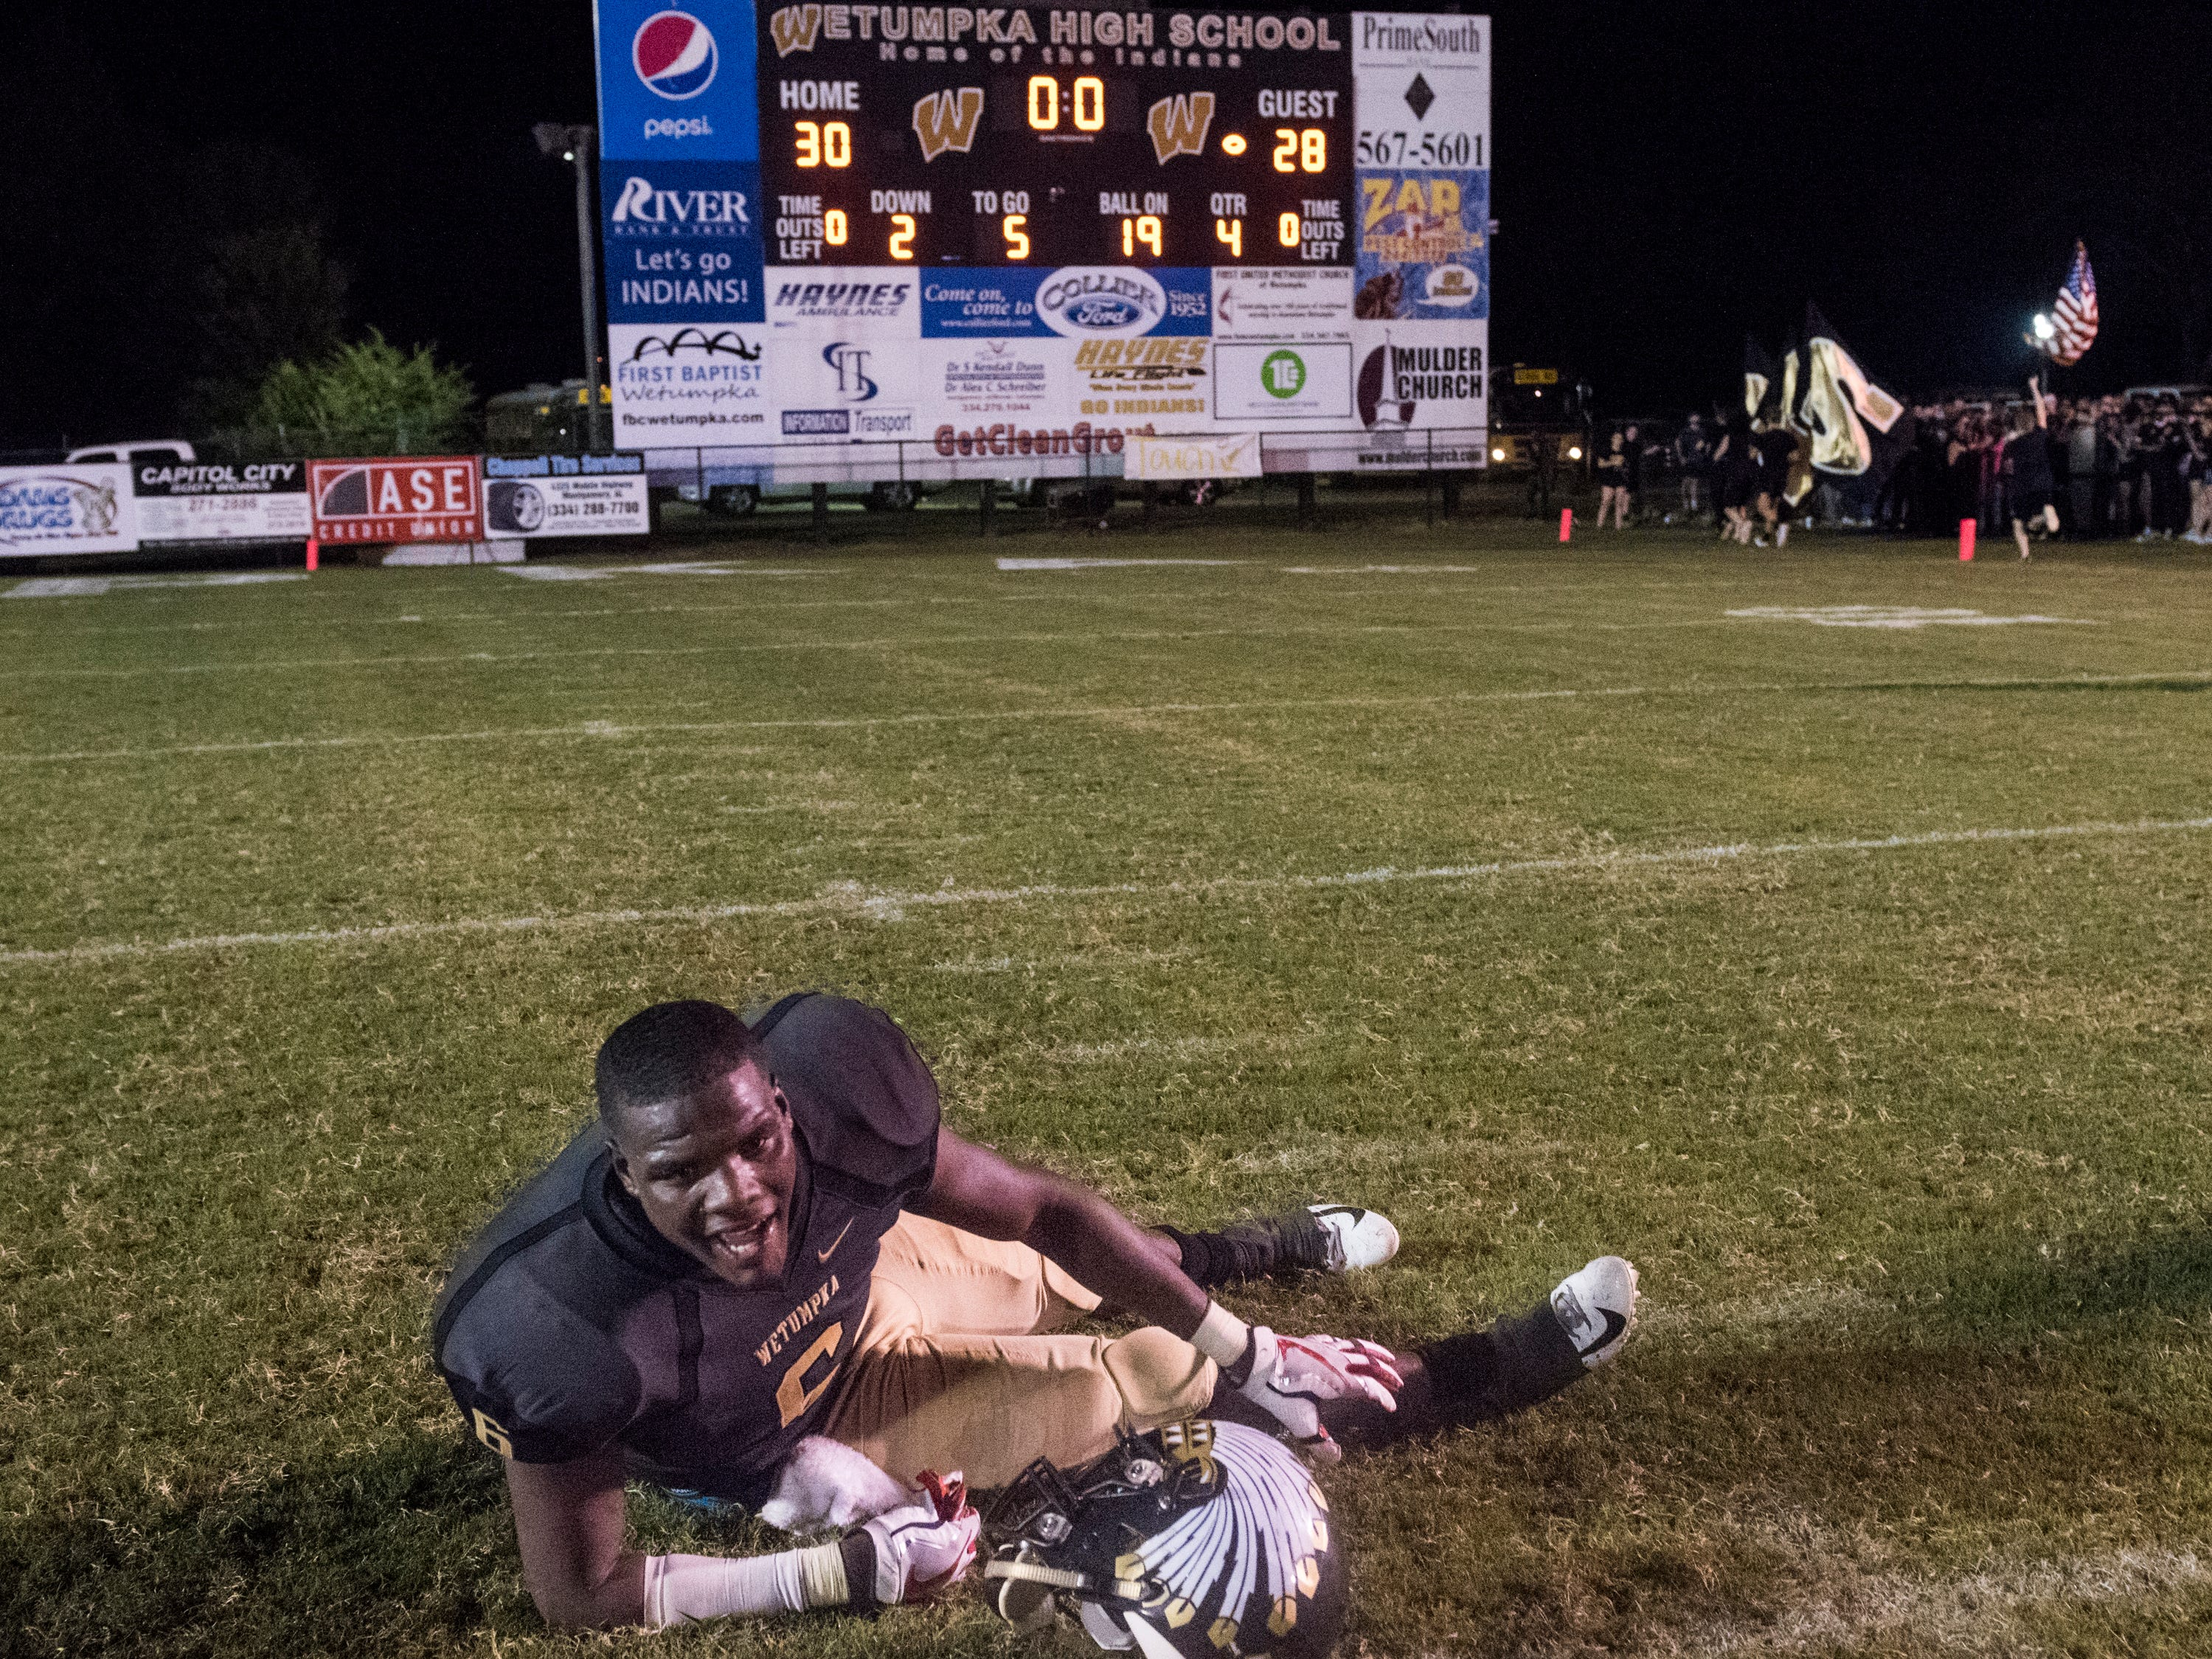 Wetumpka's quarterback TyQuan Rawls (6) goes down with a cramp after celebrating and leading his team to victory against Opelika at Hohenberg Field in Wetumpka, Ala., on Friday, Sept. 14, 2018. Wetumpka defeated Opelika 30-28.